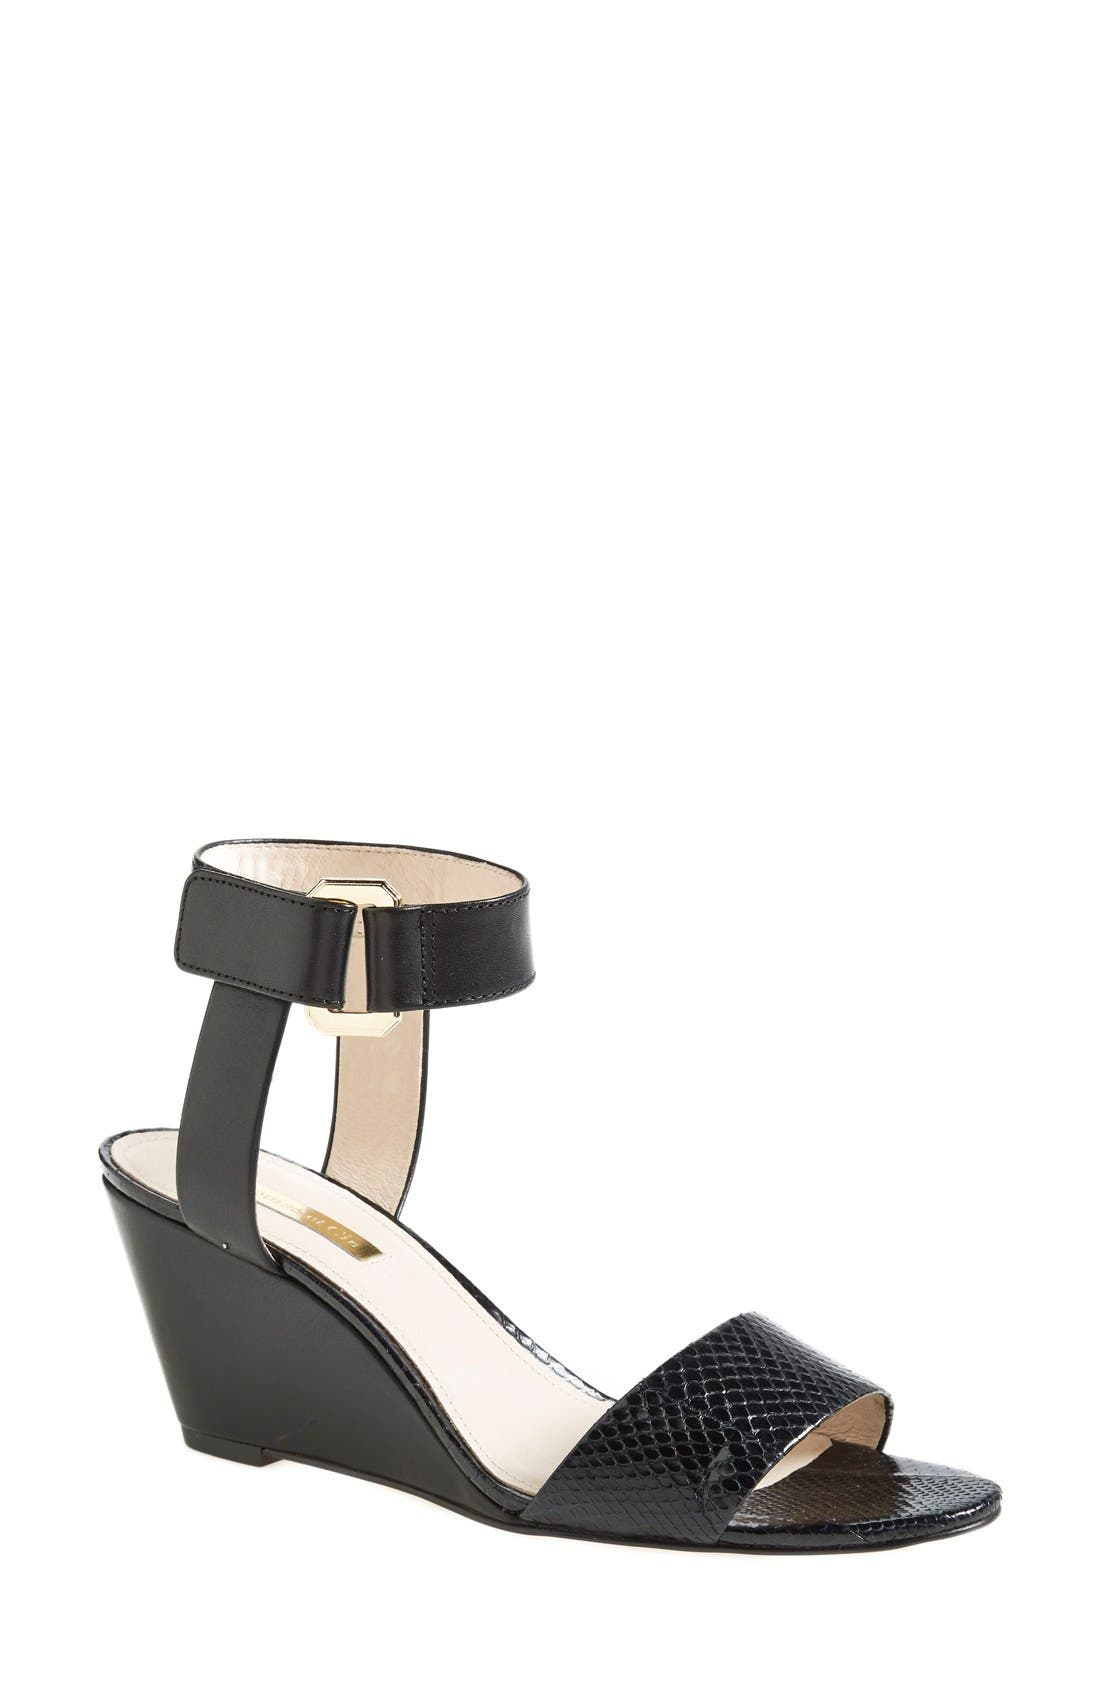 Main Image - Louise et Cie 'Phiona' Leather Ankle Strap Wedge Sandal (Women)